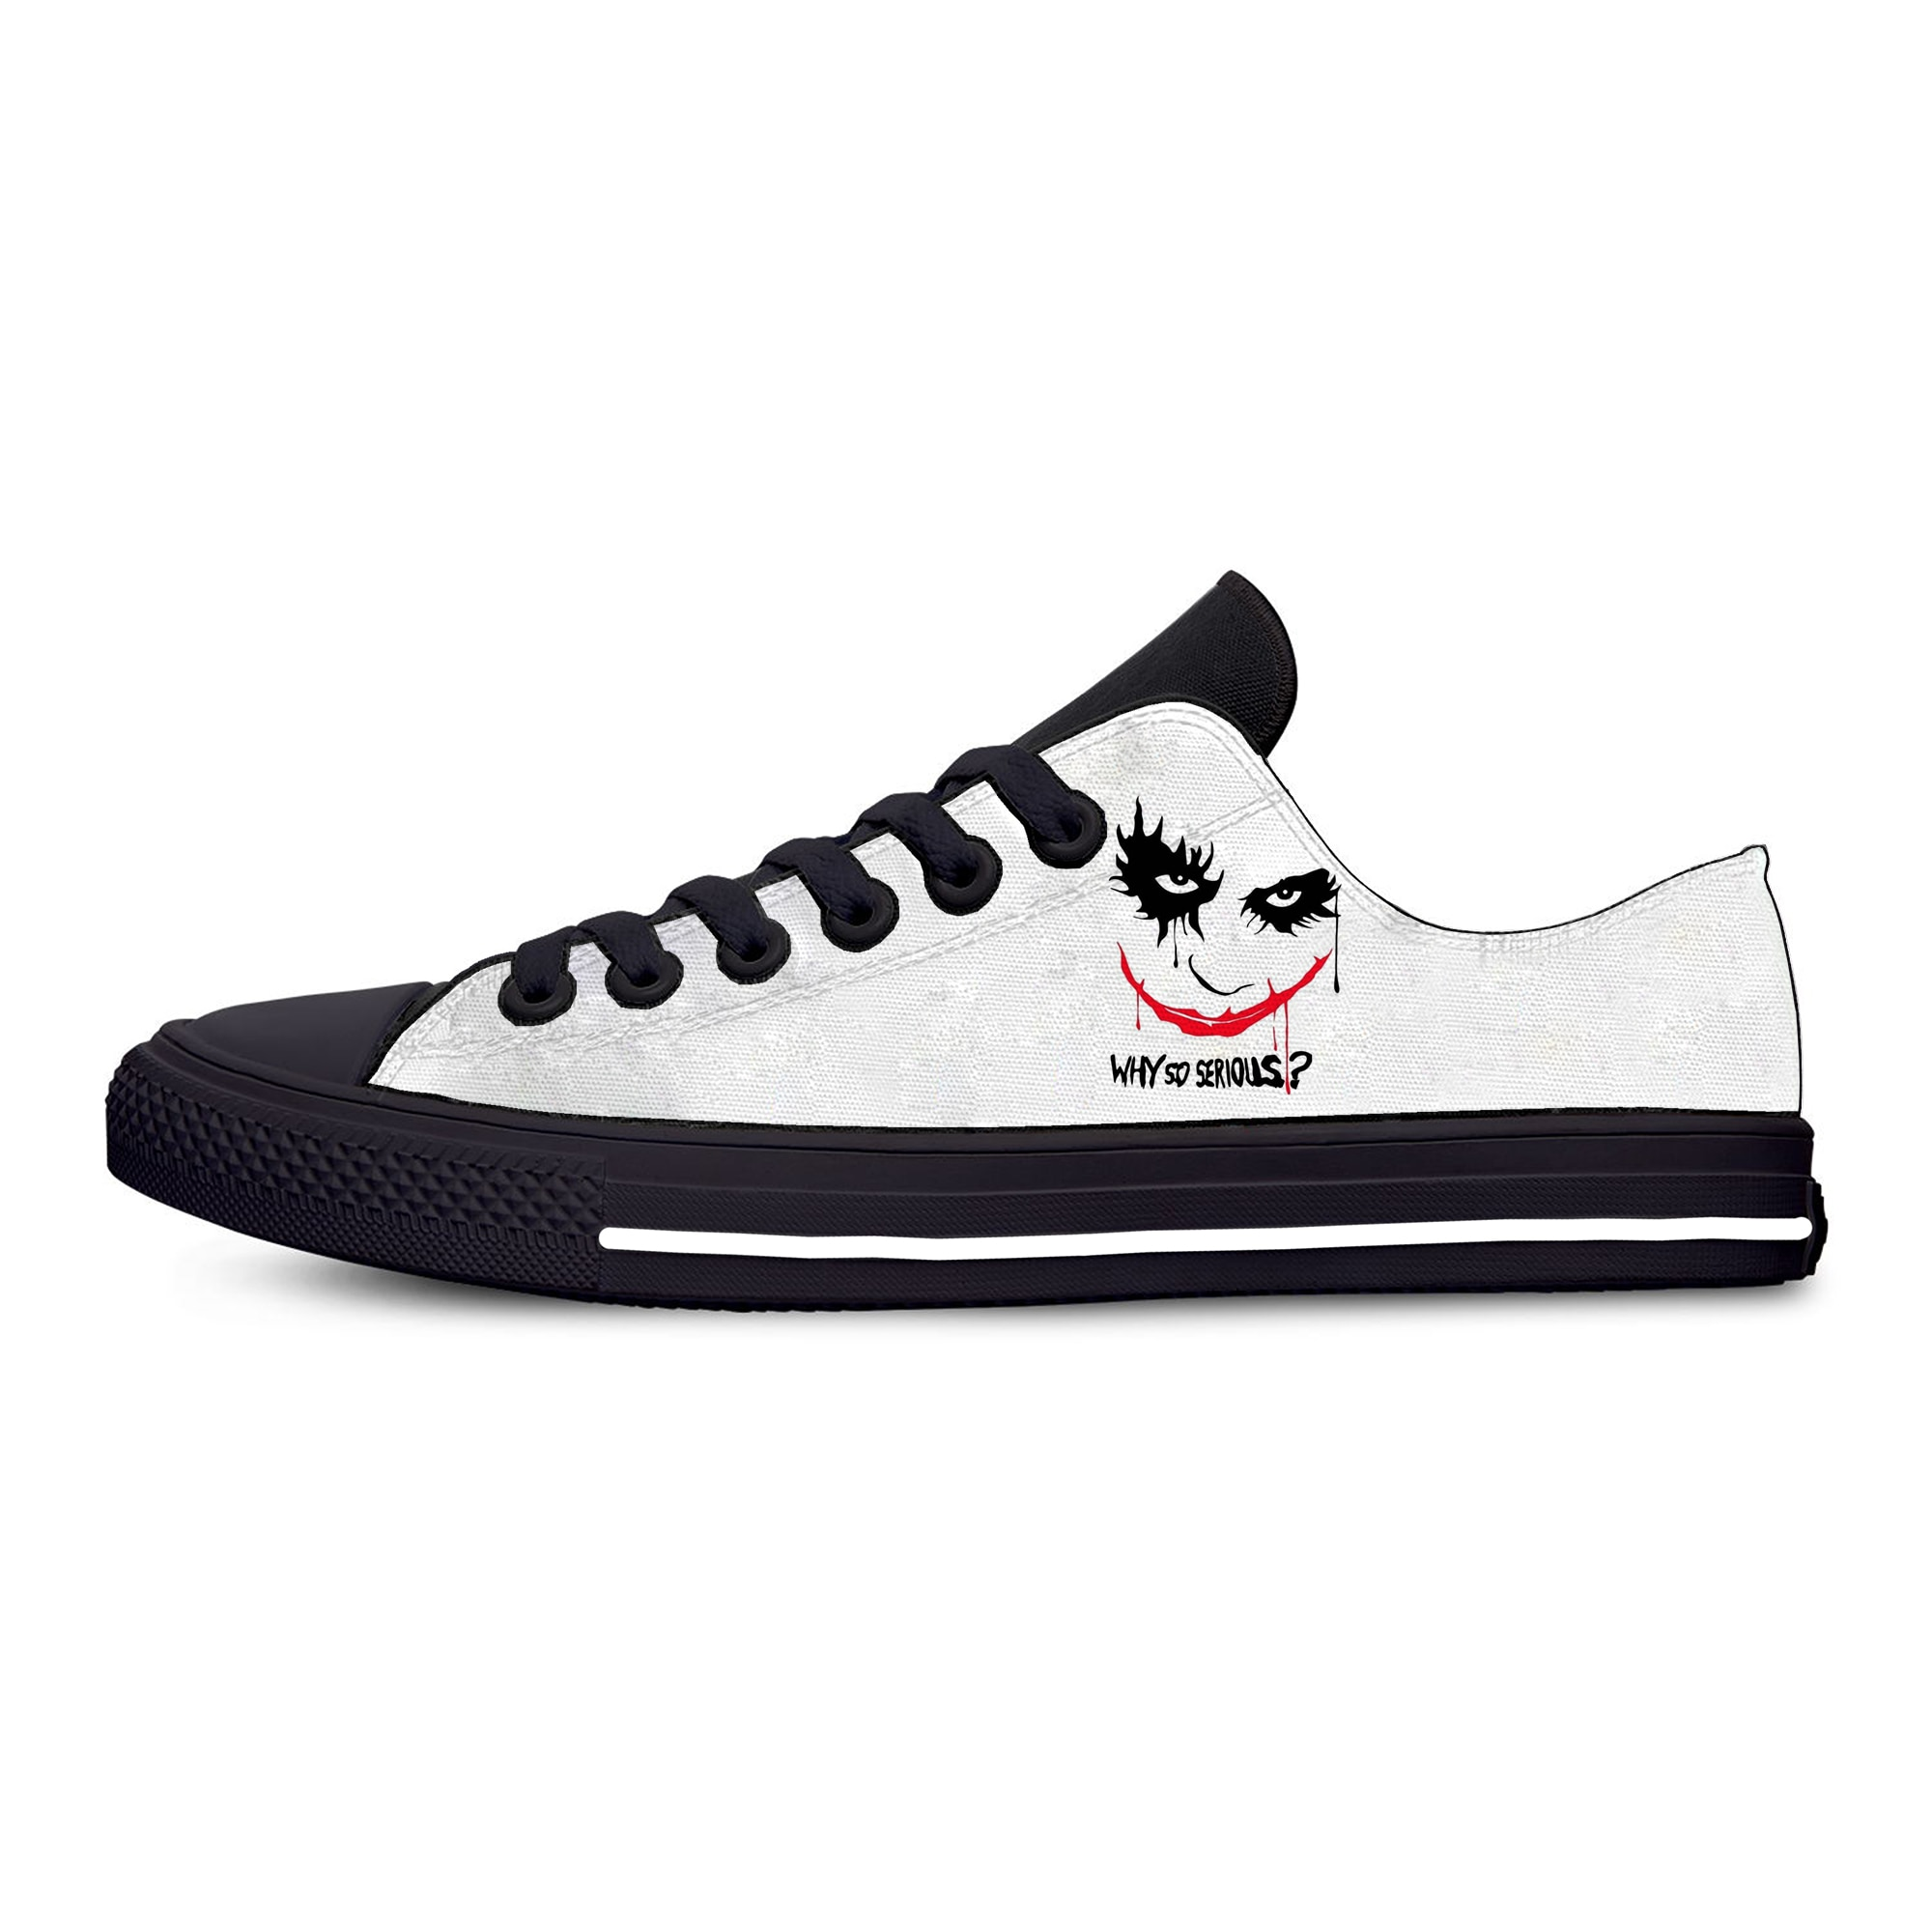 Clown joker face joke Why So Serious Cool Funny Casual Cloth Shoes Low Top Lightweight Breathable 3D Printed Men women Sneakers